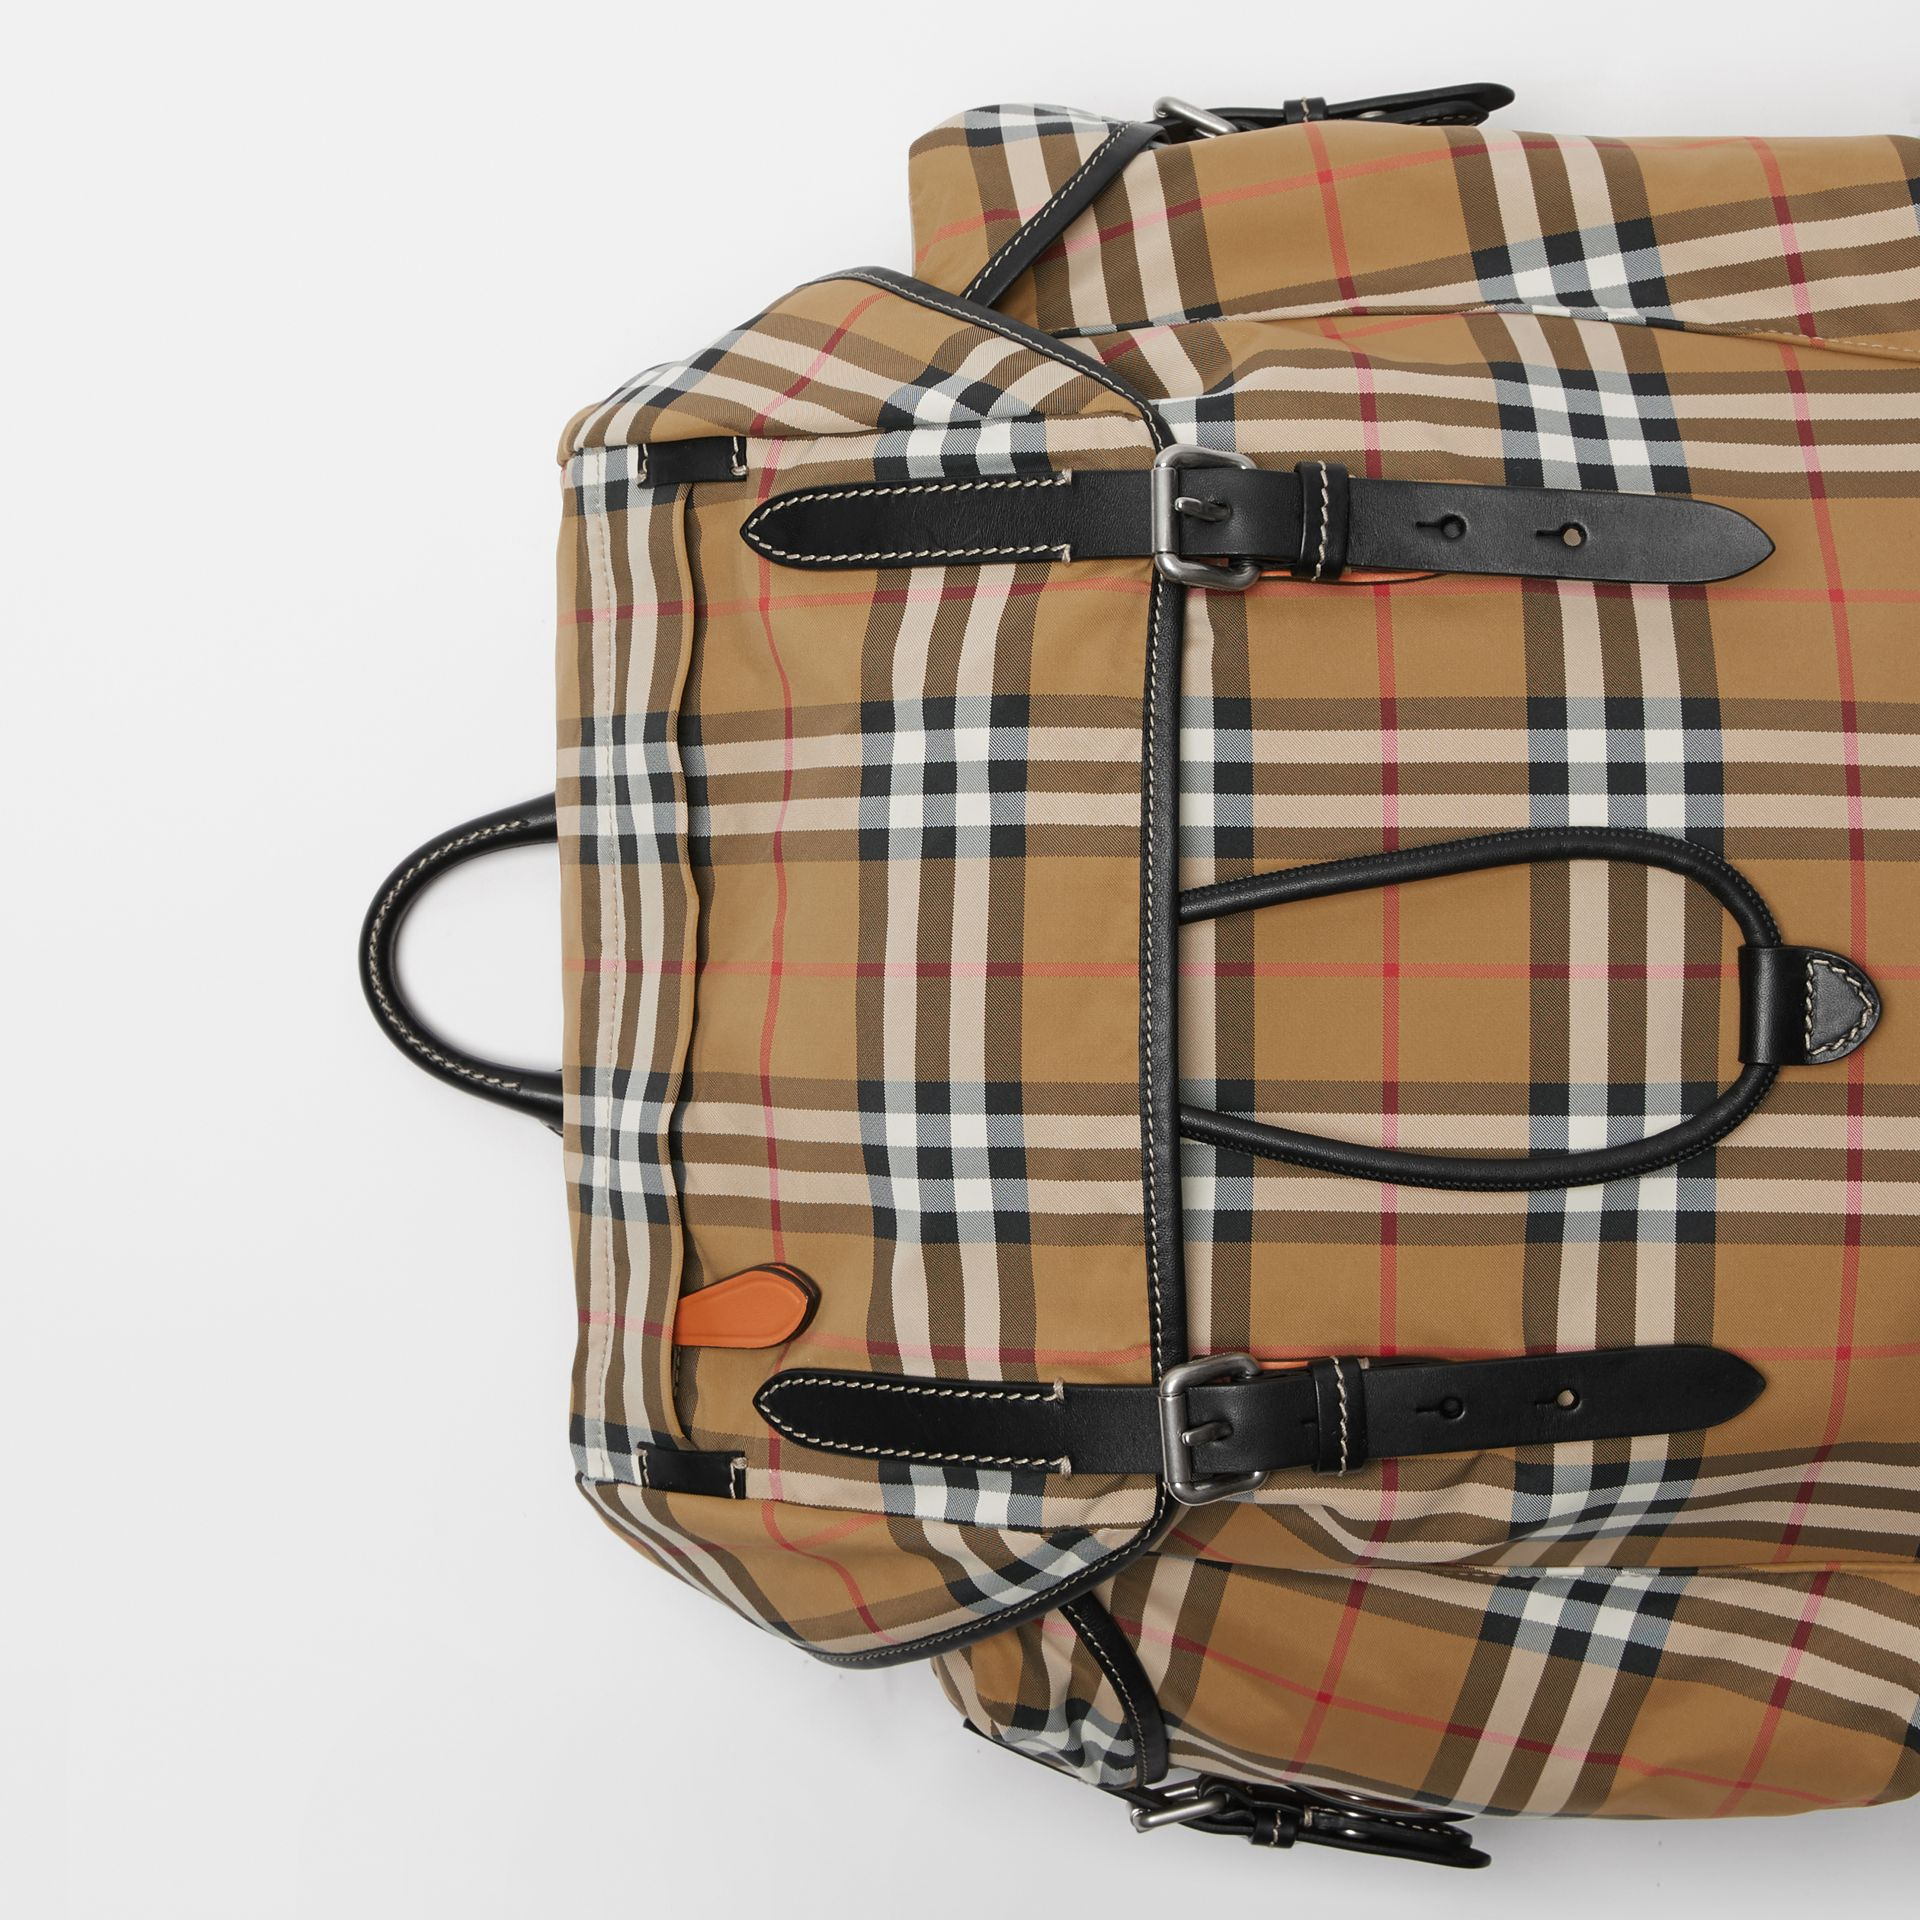 Sac à dos en cuir à motif Vintage check (Jaune Antique) - Homme | Burberry - photo de la galerie 1